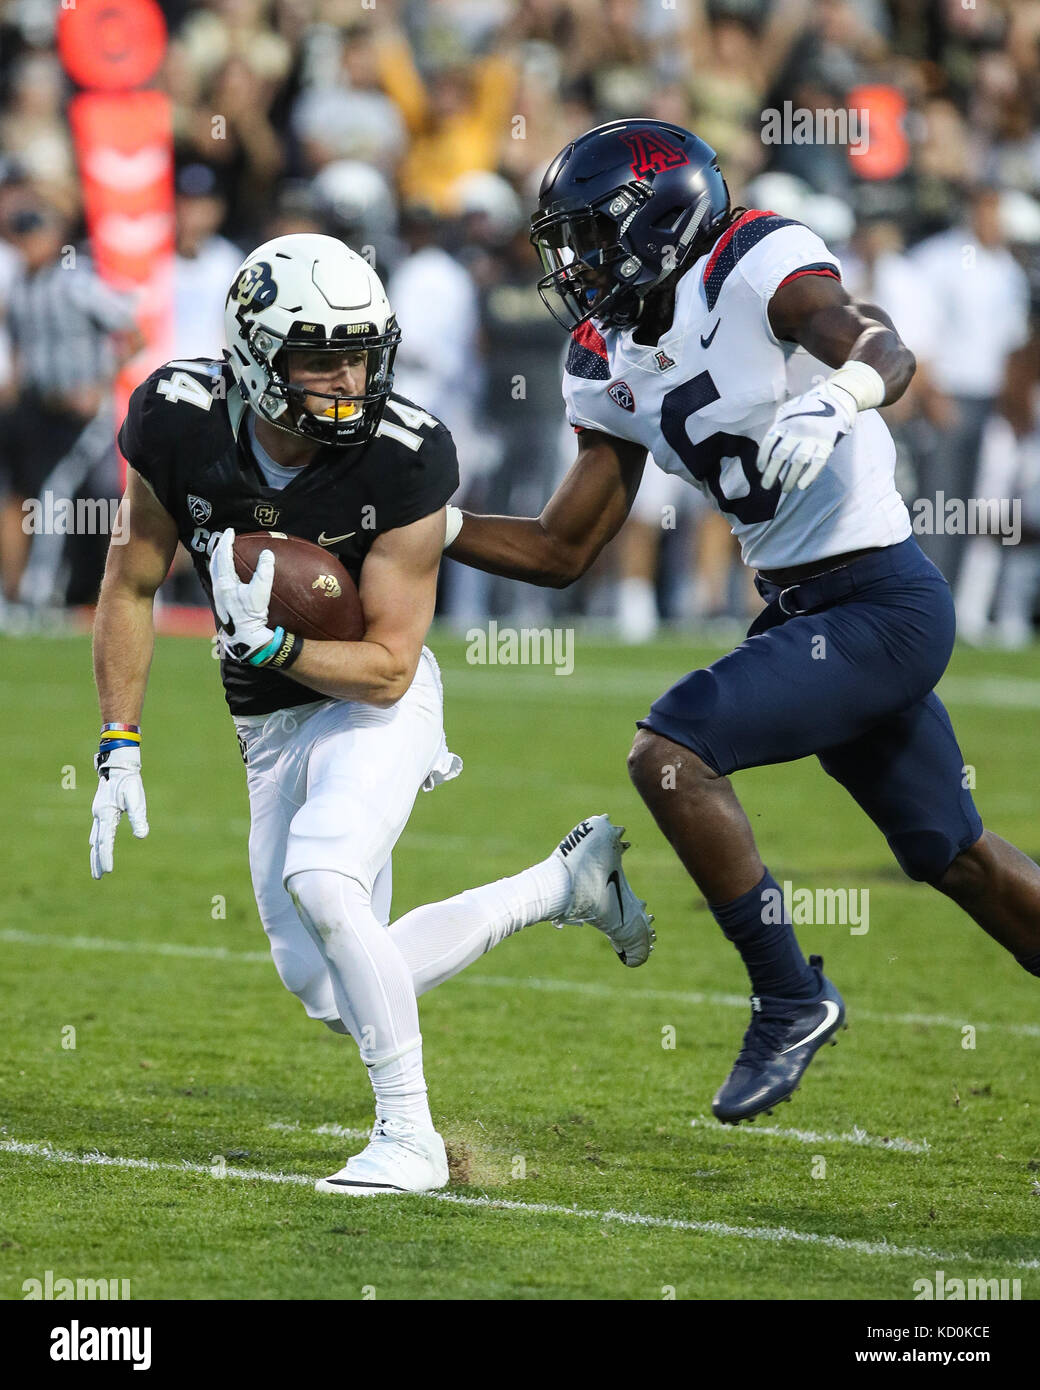 October 7, 2017: Colorado wide receiver Jay MacIntyre is brought down by Arizona's Demtrius Flannigan FOwles - Stock Image